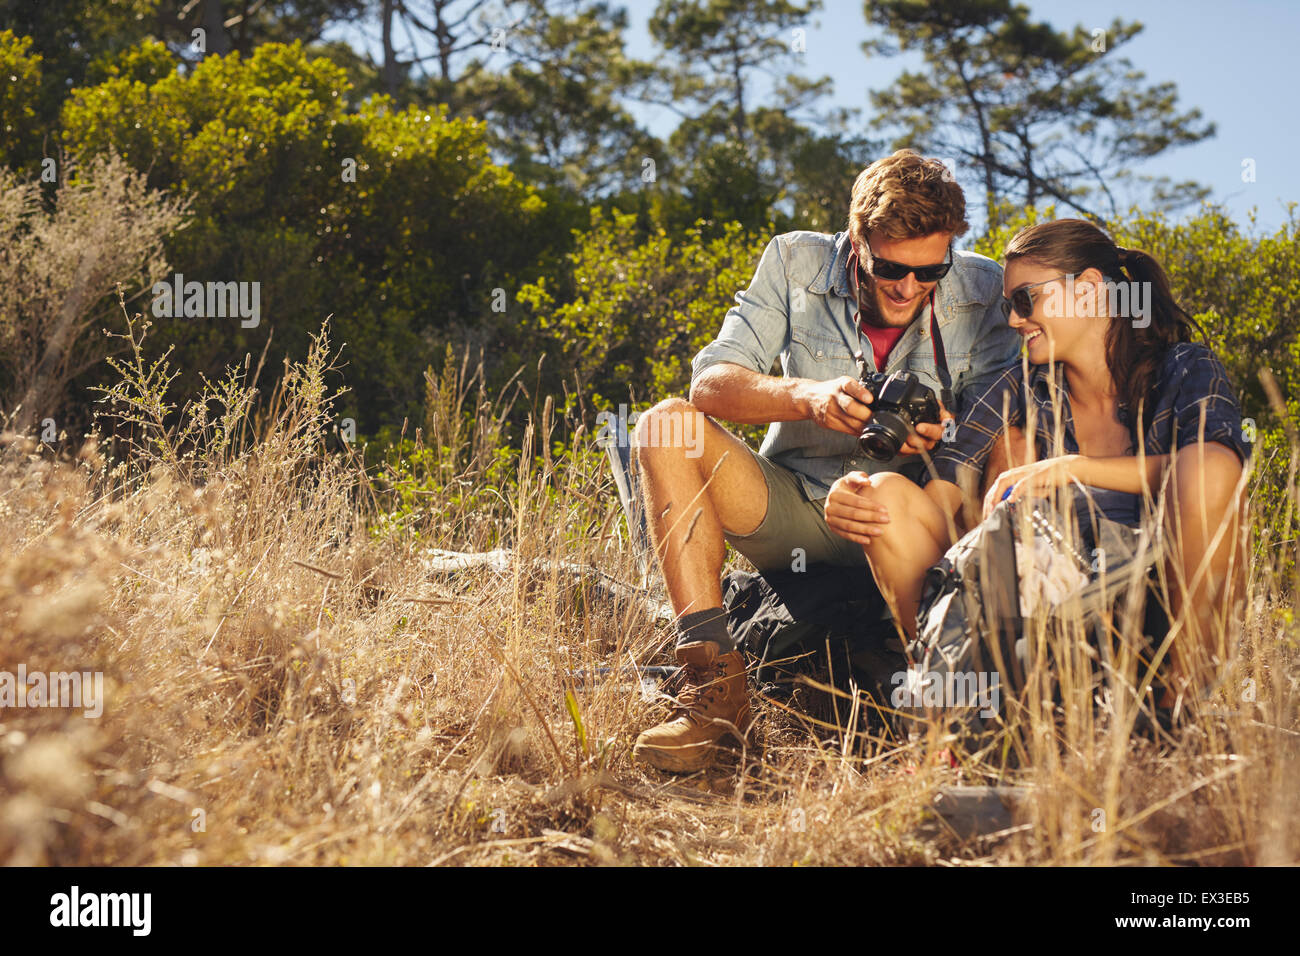 Young couple outdoors looking at photos on camera. Caucasian man and woman on hiking trip taking a break. - Stock Image